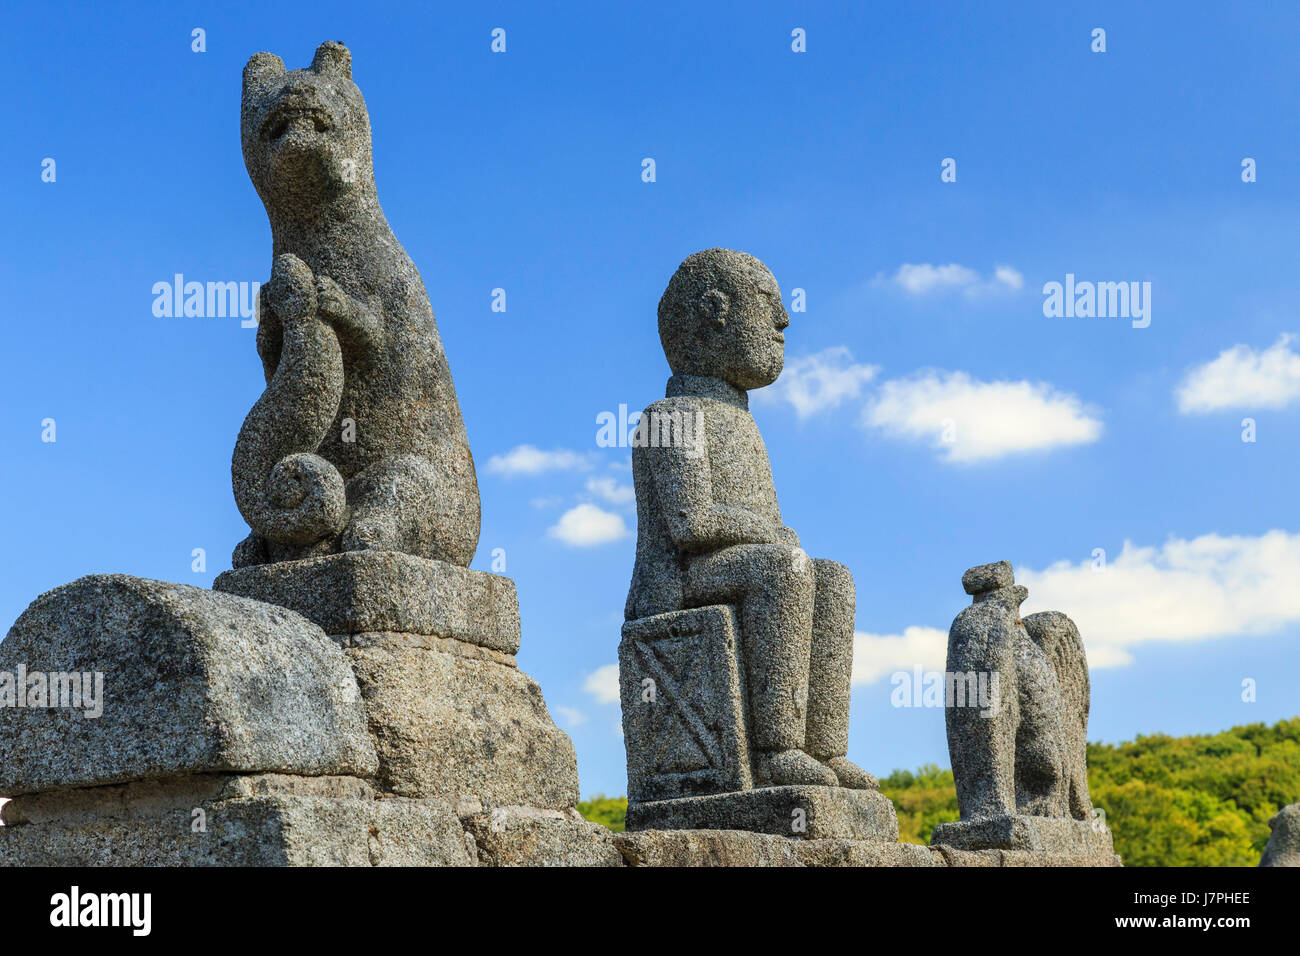 France, Creuse, Franseches, Masgot hamlet, sculptures by François Michaud of his kitchen garden - Stock Image